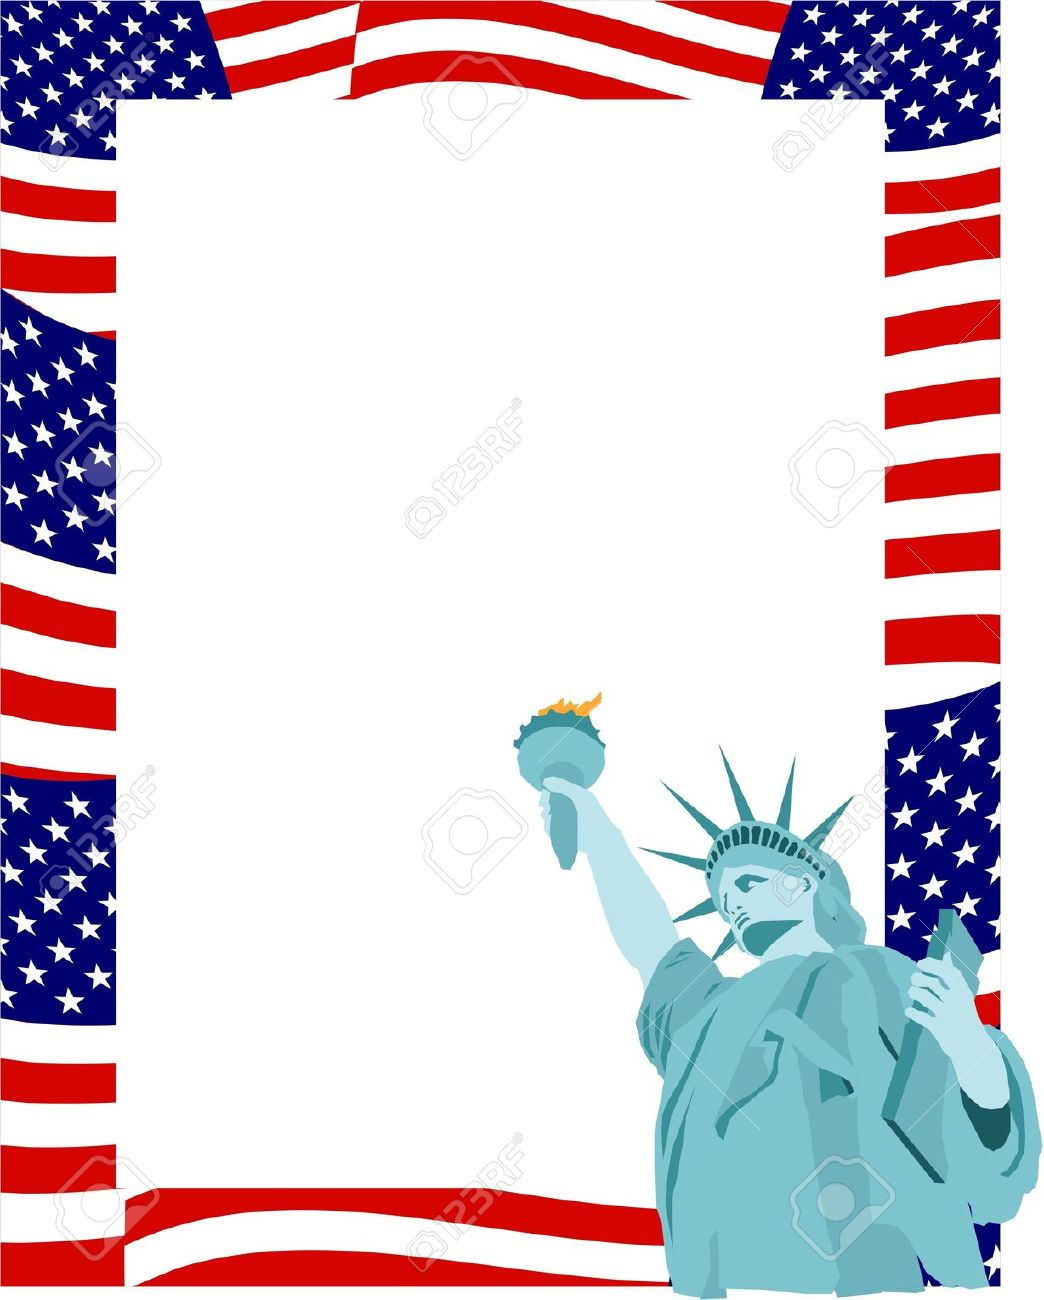 American Flag Border With Statue Of Liberty Stock Photo, Picture.